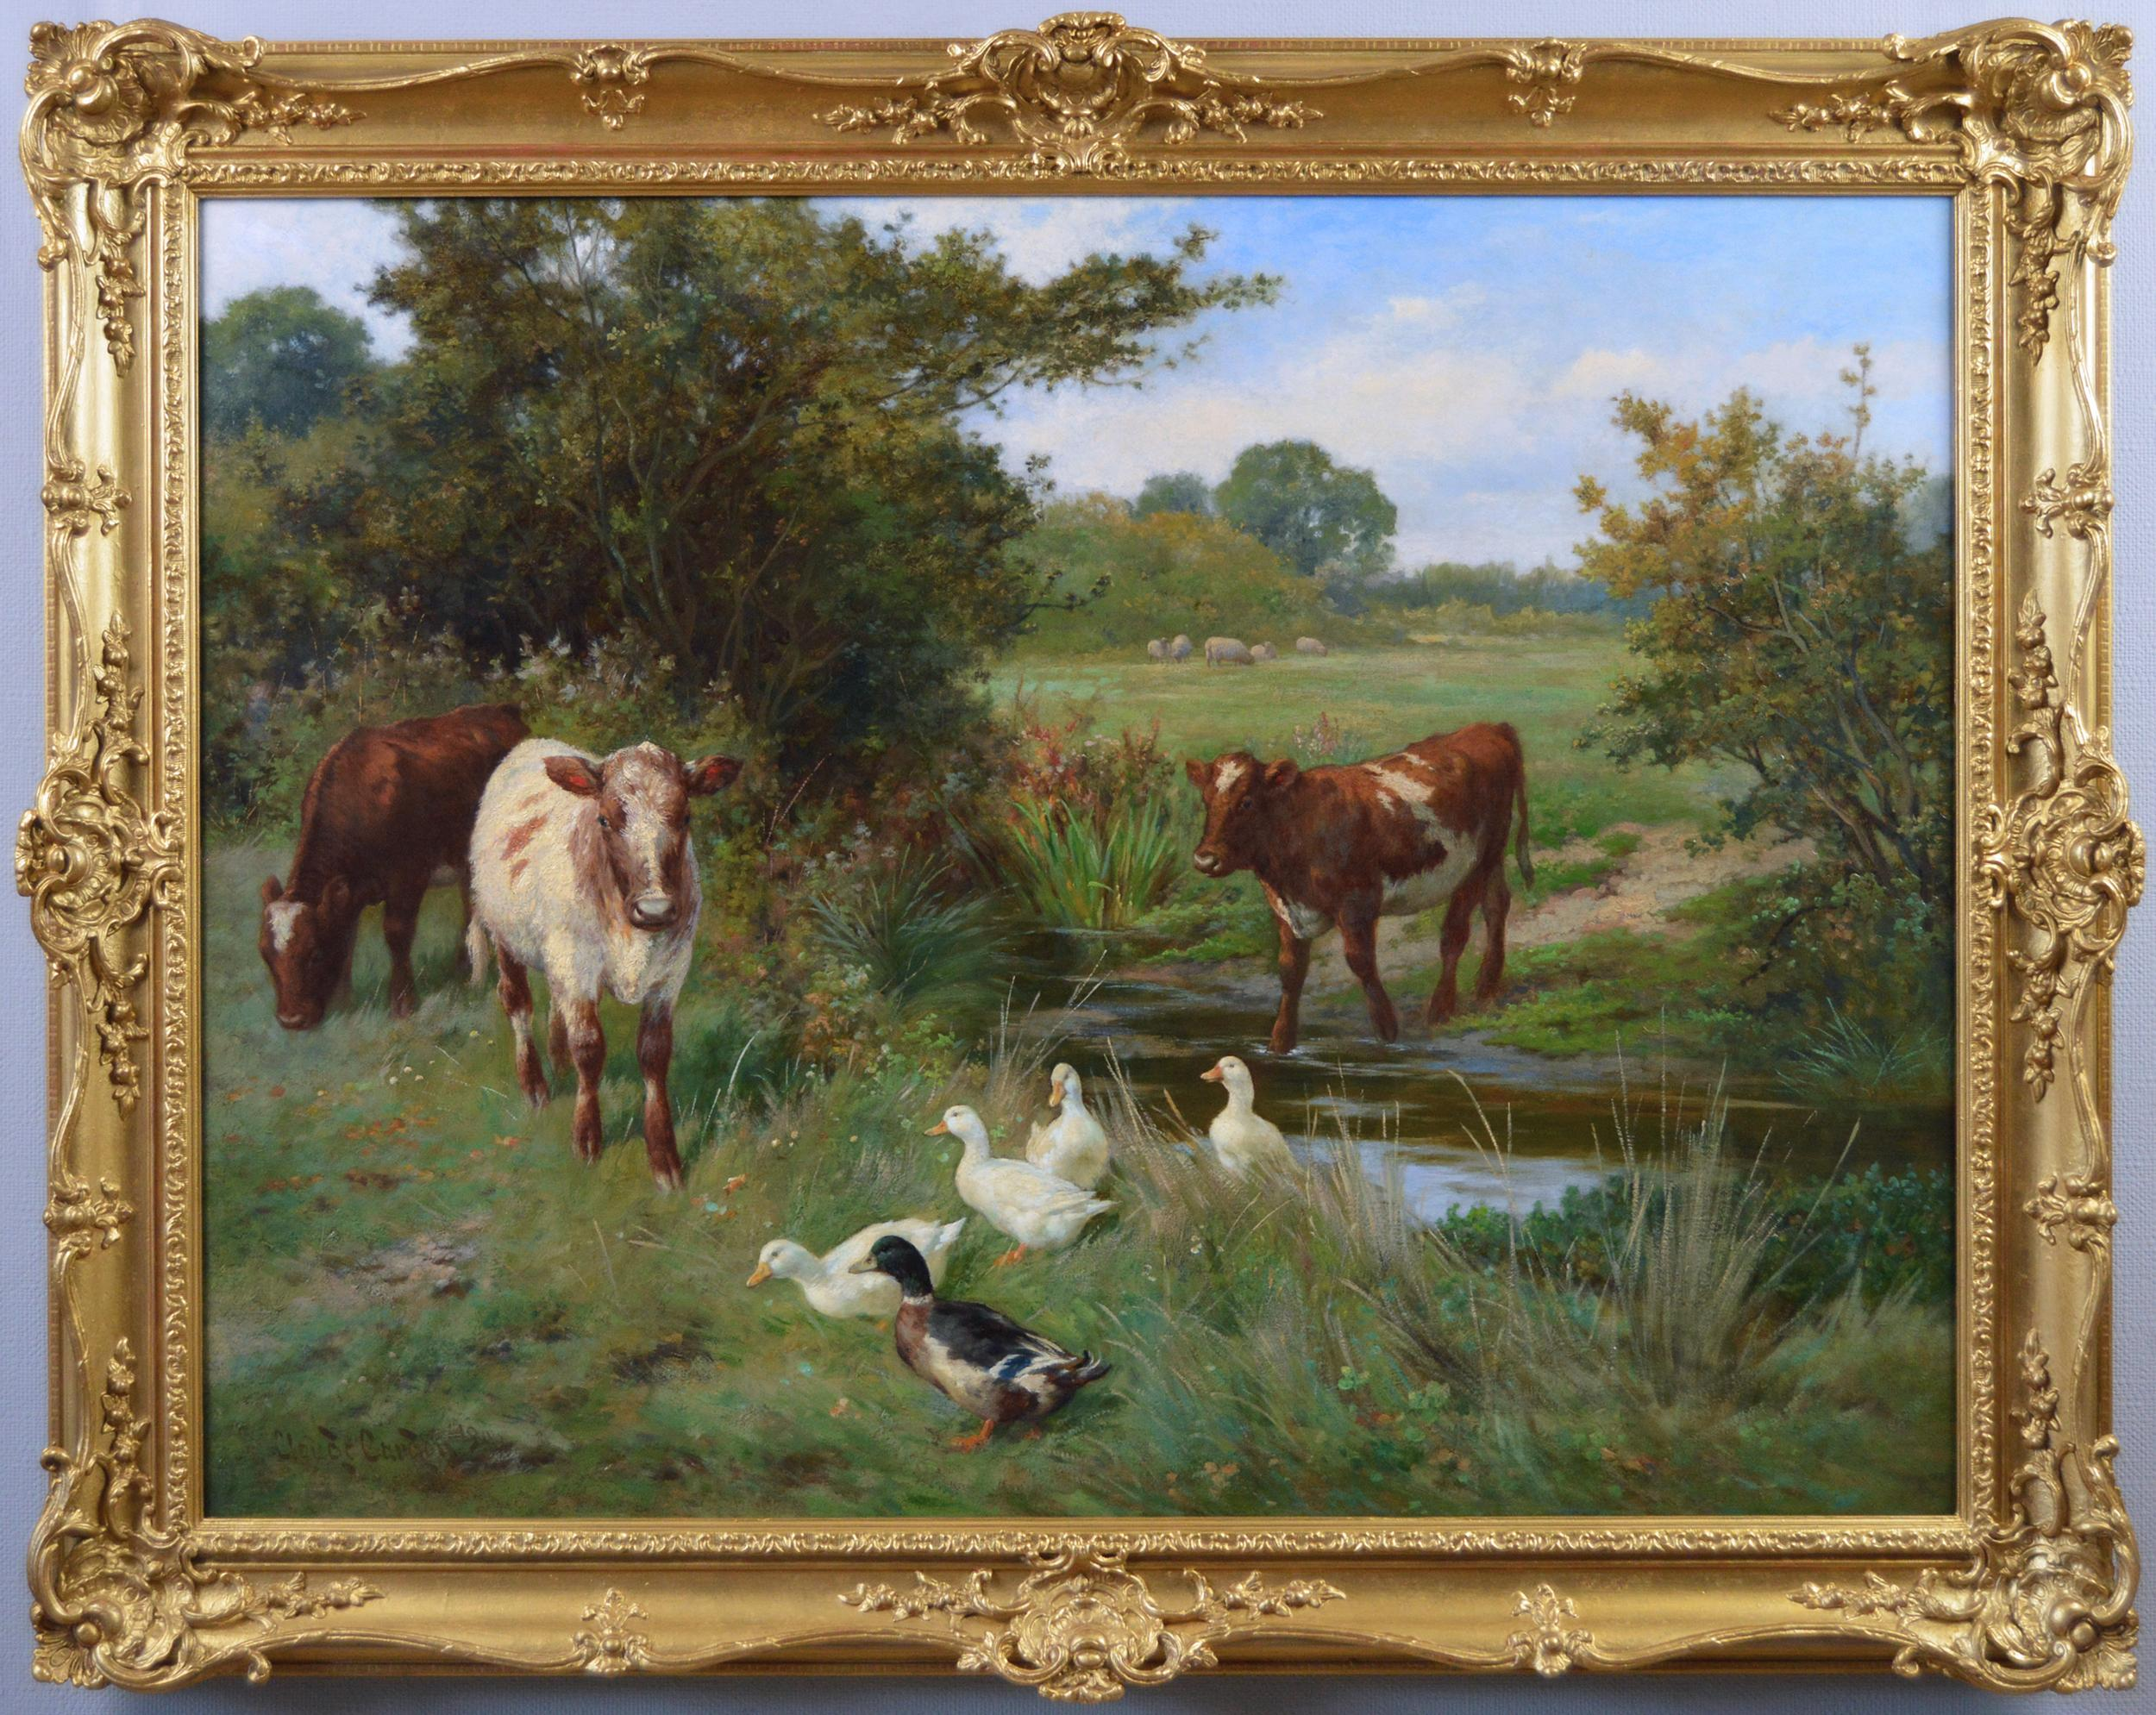 19th Century landscape animal oil painting of cows & ducks at a river